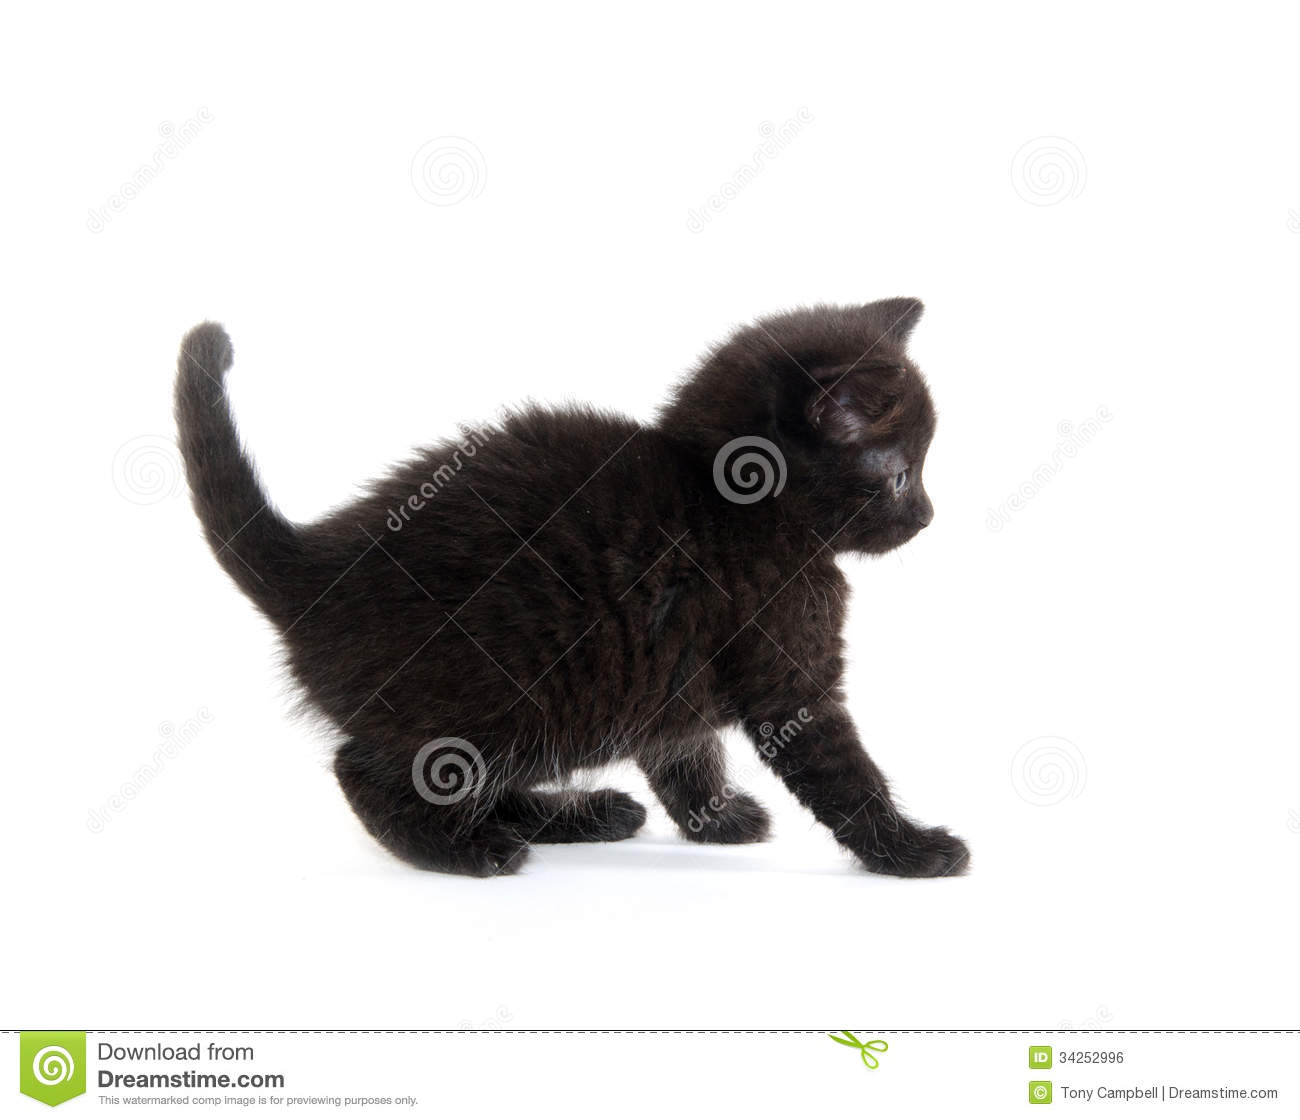 Scared black kitten stock photo. Image of cute, animal ...